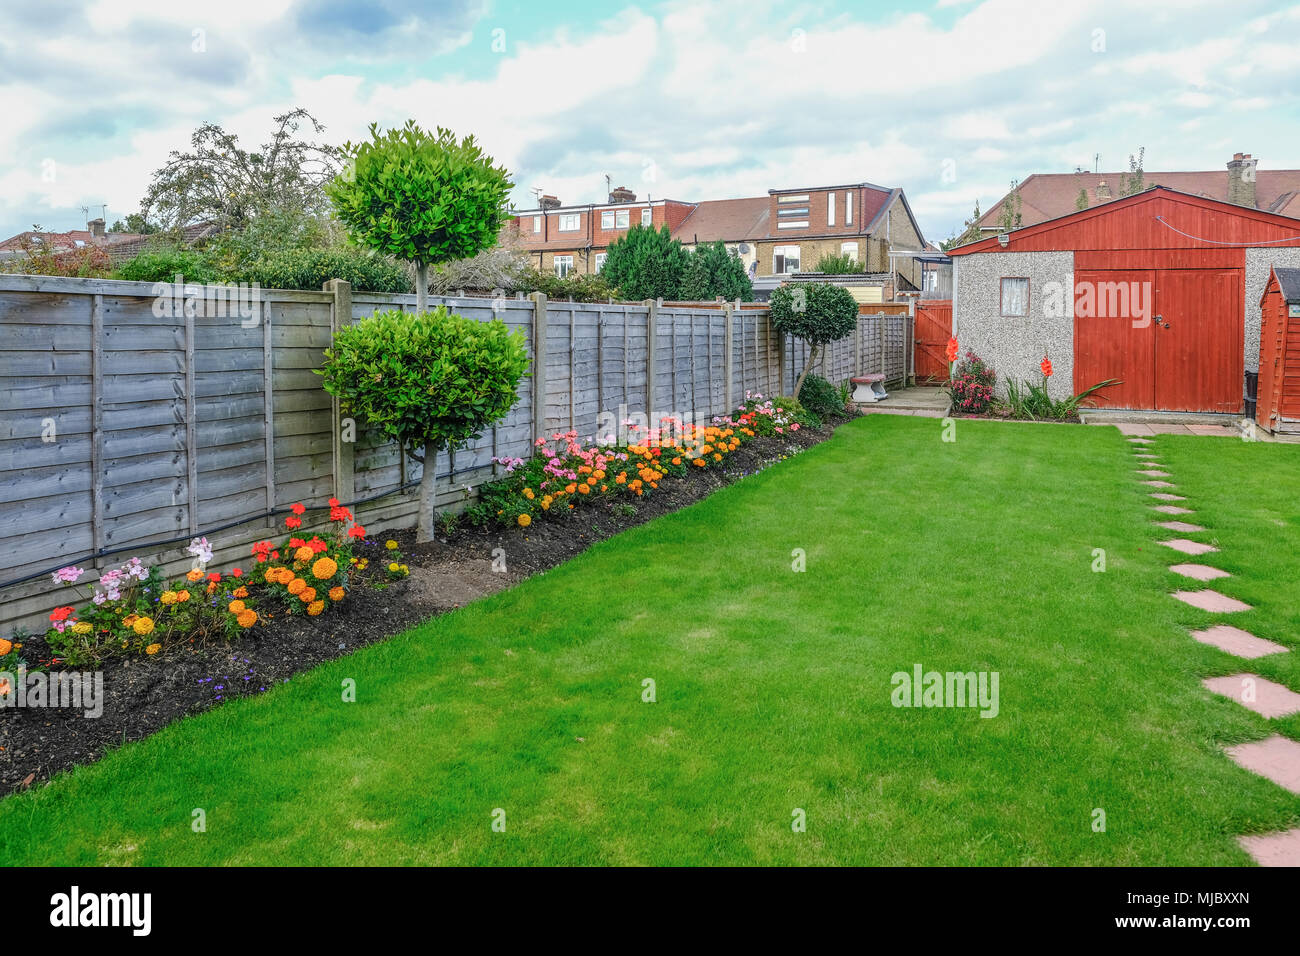 View Of A Typrical Semi Detatched Backgarden With Lawn And Flower